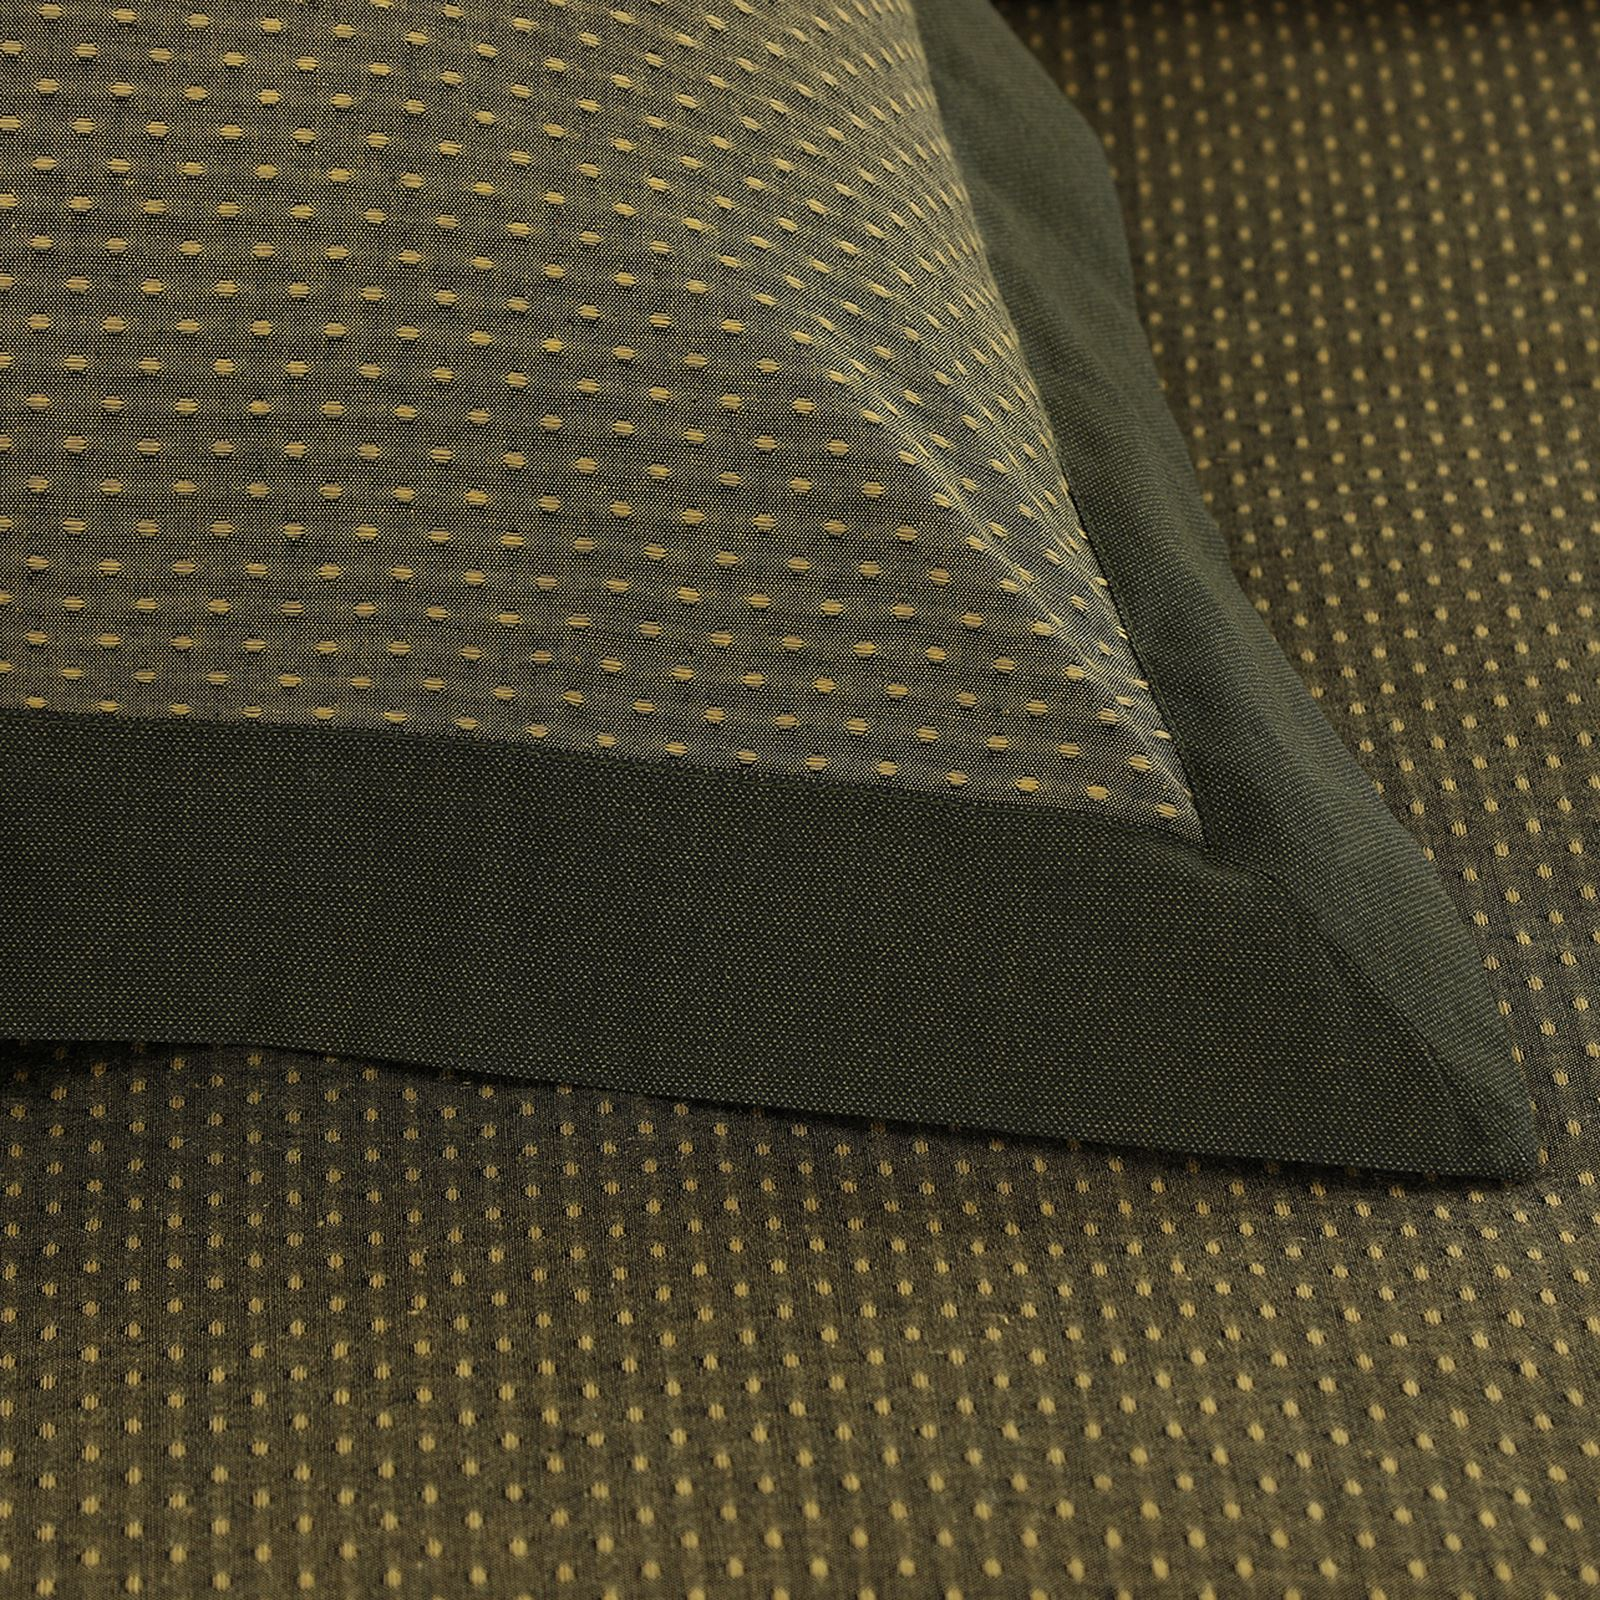 Luxury-Dobby-Dots-Dotted-100-Cotton-Duvet-Cover-Bedding-Set-Single-Double-King thumbnail 8